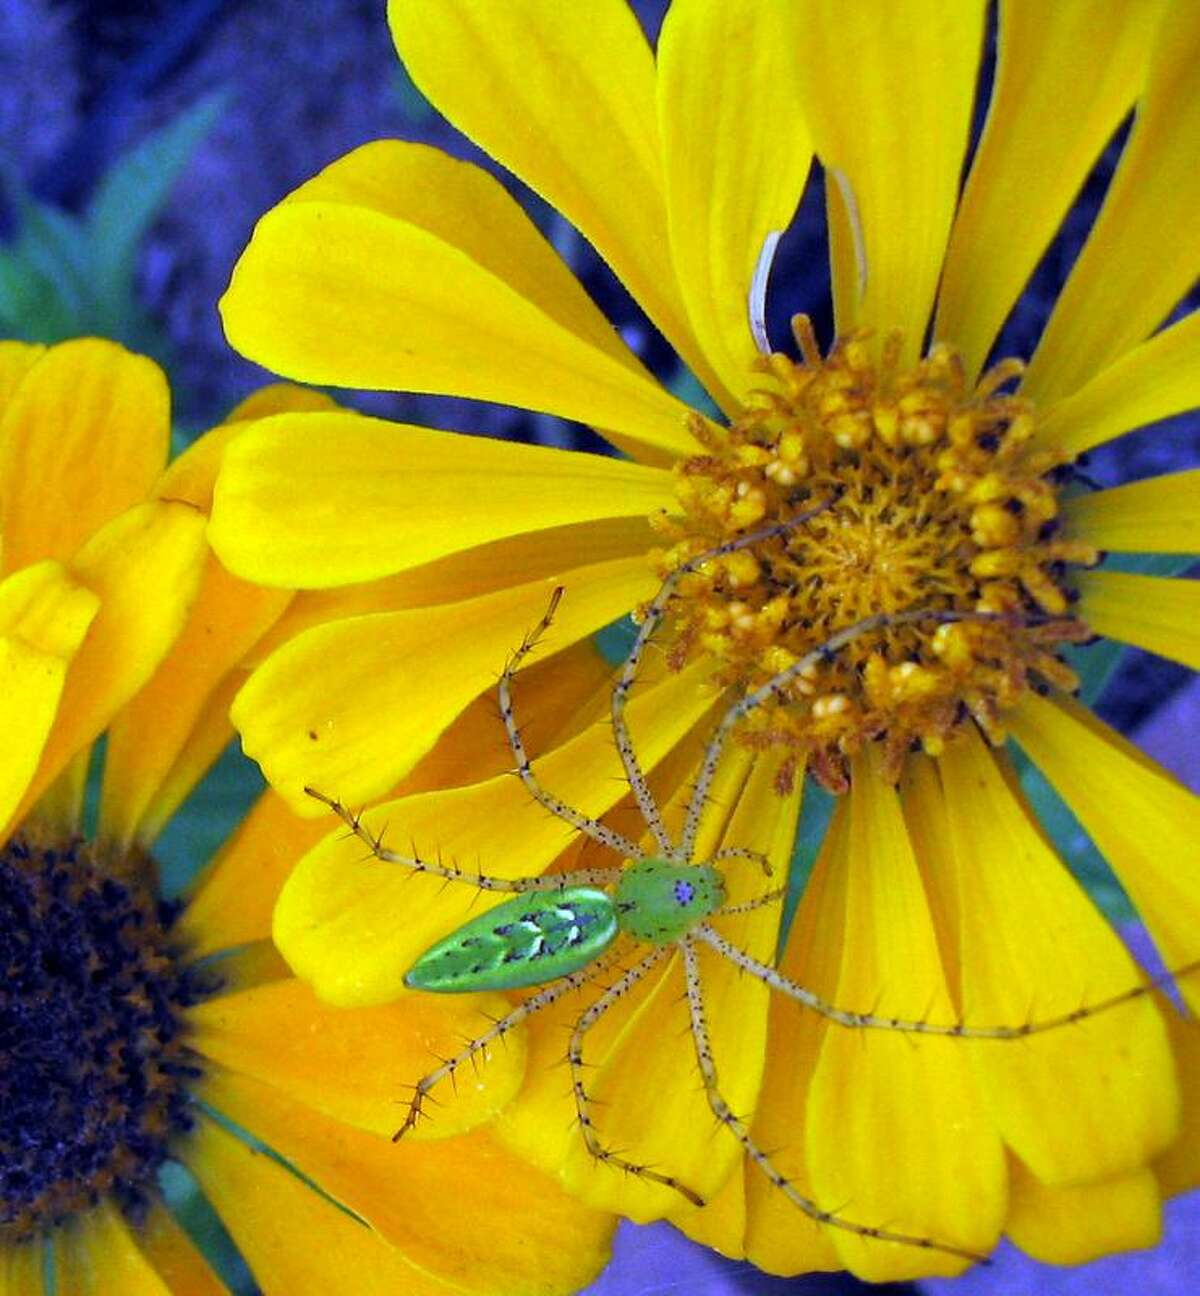 Zinnias will bloom all summer attracting butterflies and beneficial critters like this green lynx spider.